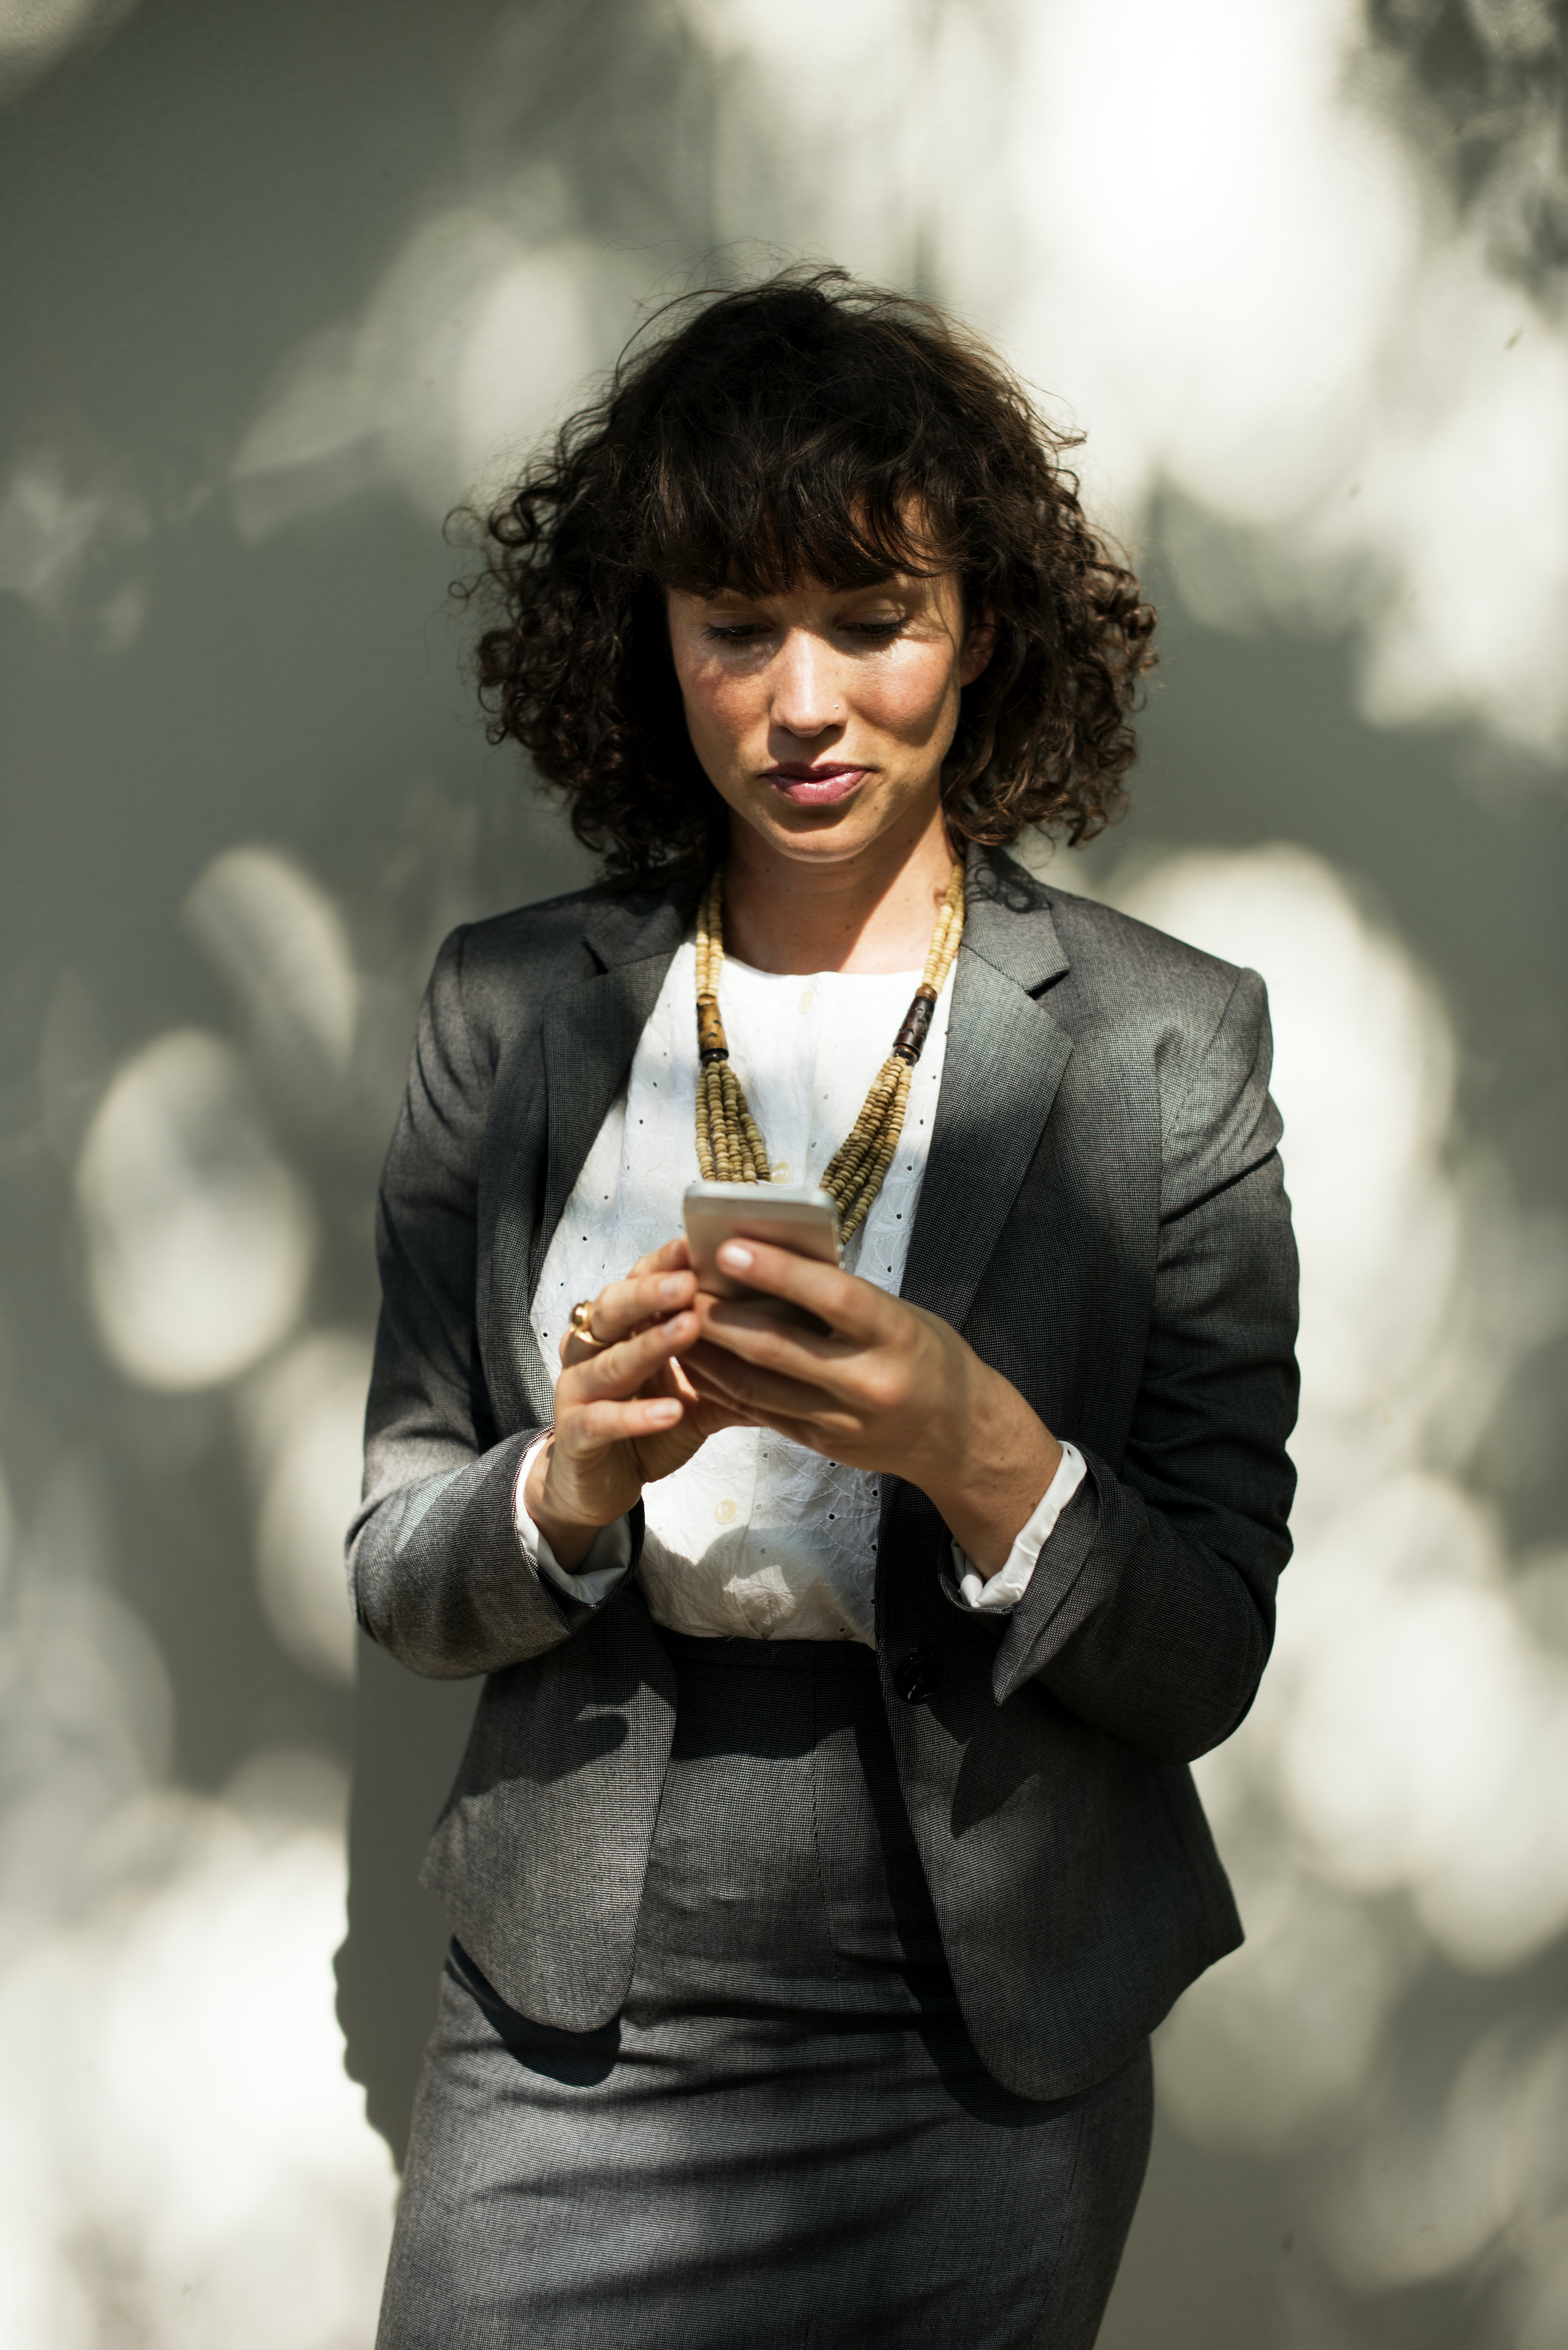 woman in black suit holding smartphone behind wall